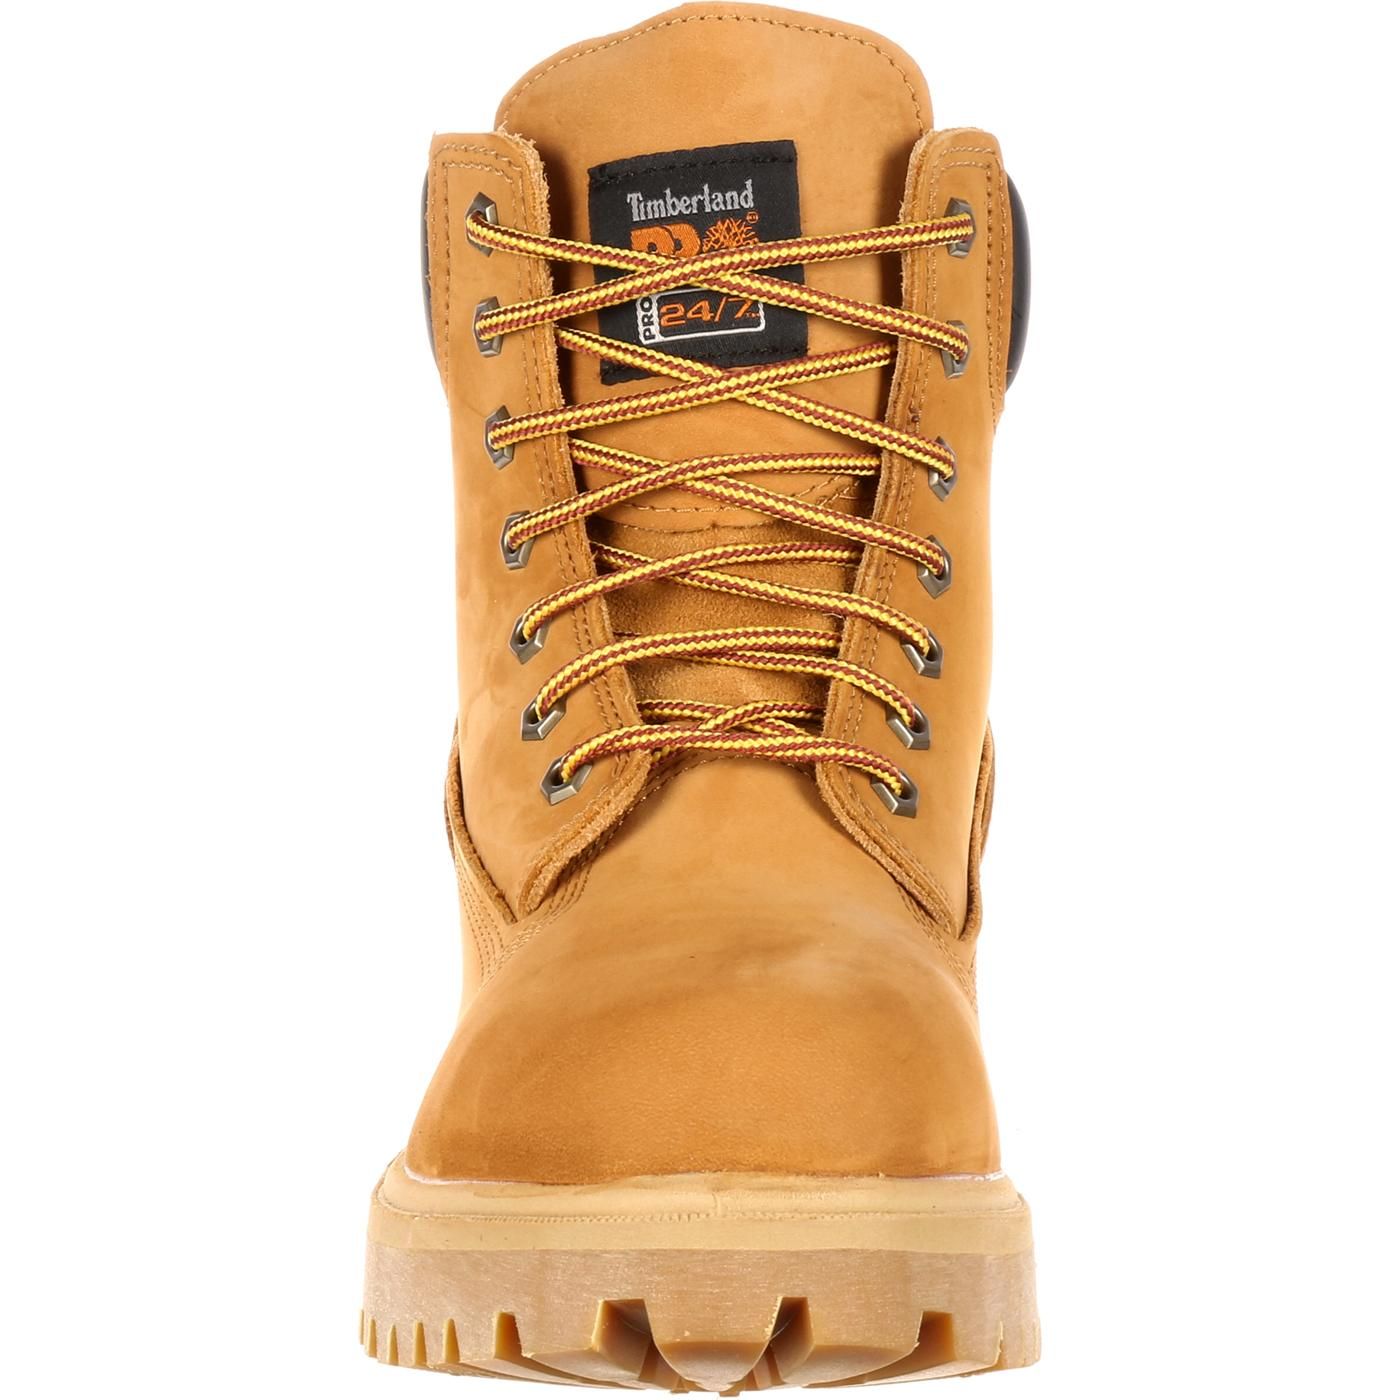 7c76644b Loading zoom. Timberland PRO Direct Attach Steel Toe Waterproof 200g  Insulated Work Boot, , small. Timberland ...